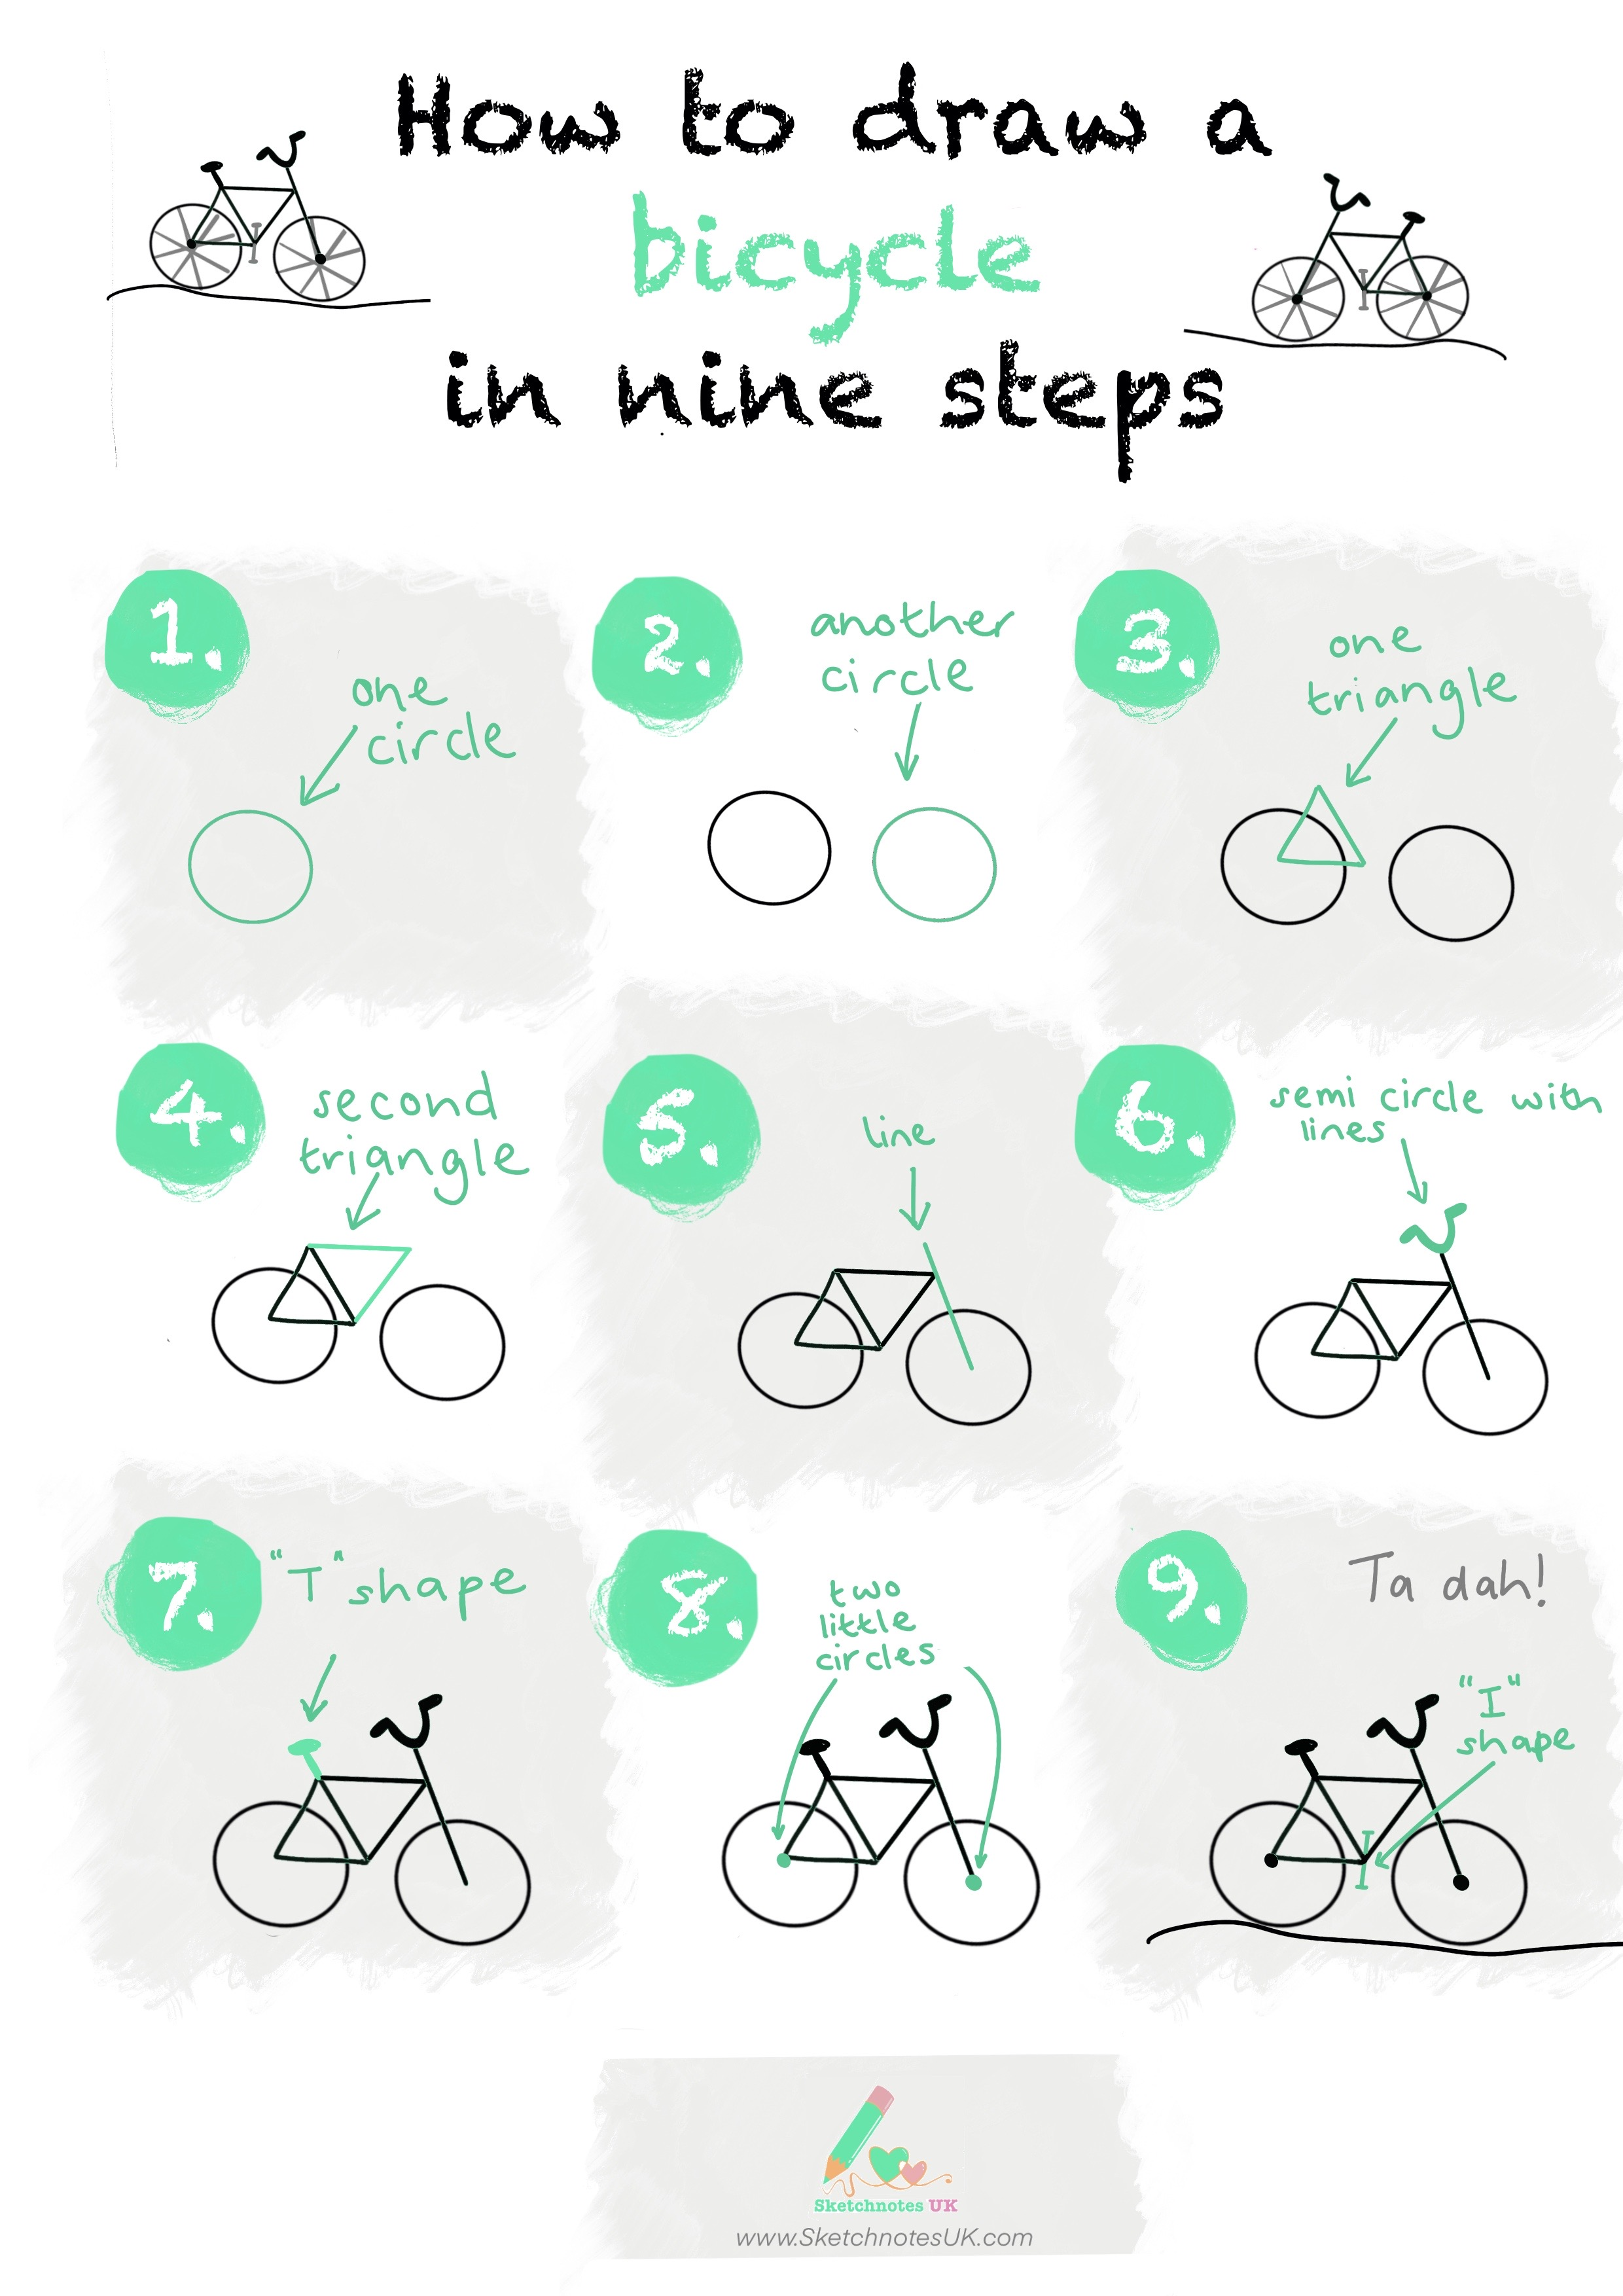 How to draw a bicycle.JPG